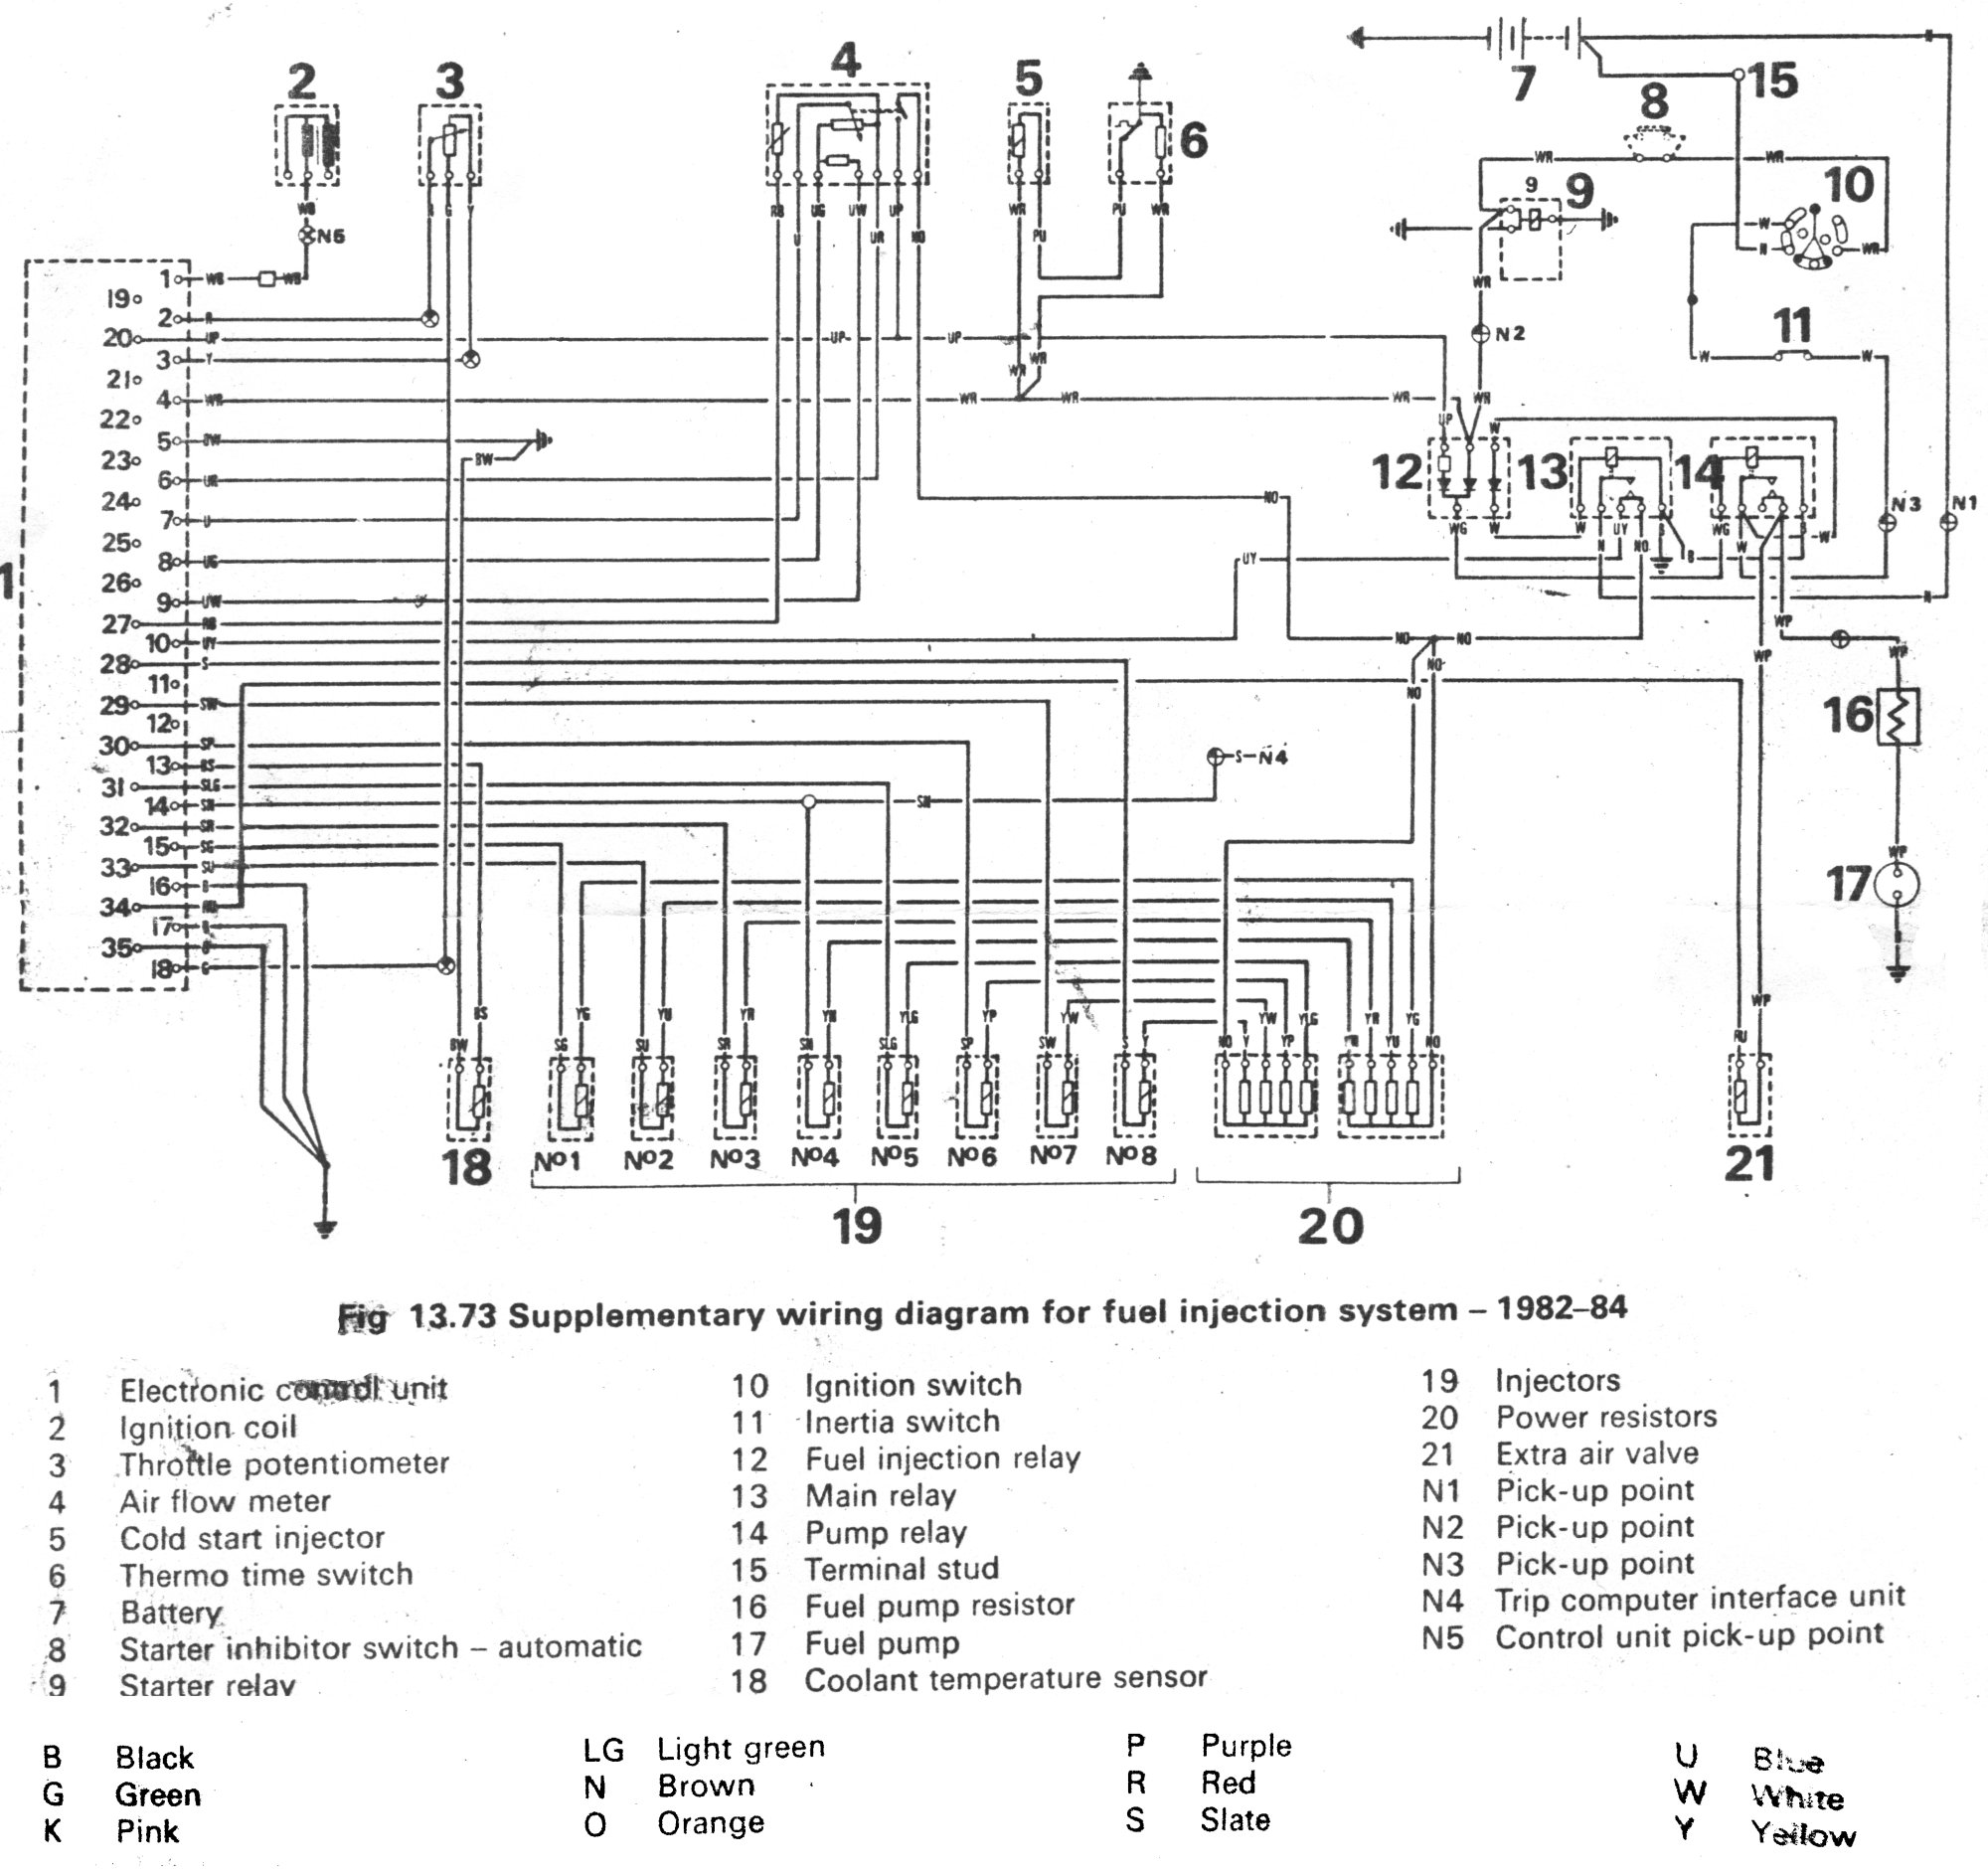 hight resolution of land rover discovery 2 wiring diagram free picture wiring diagrams land rover bmw diagram of land rover 200tdi engine